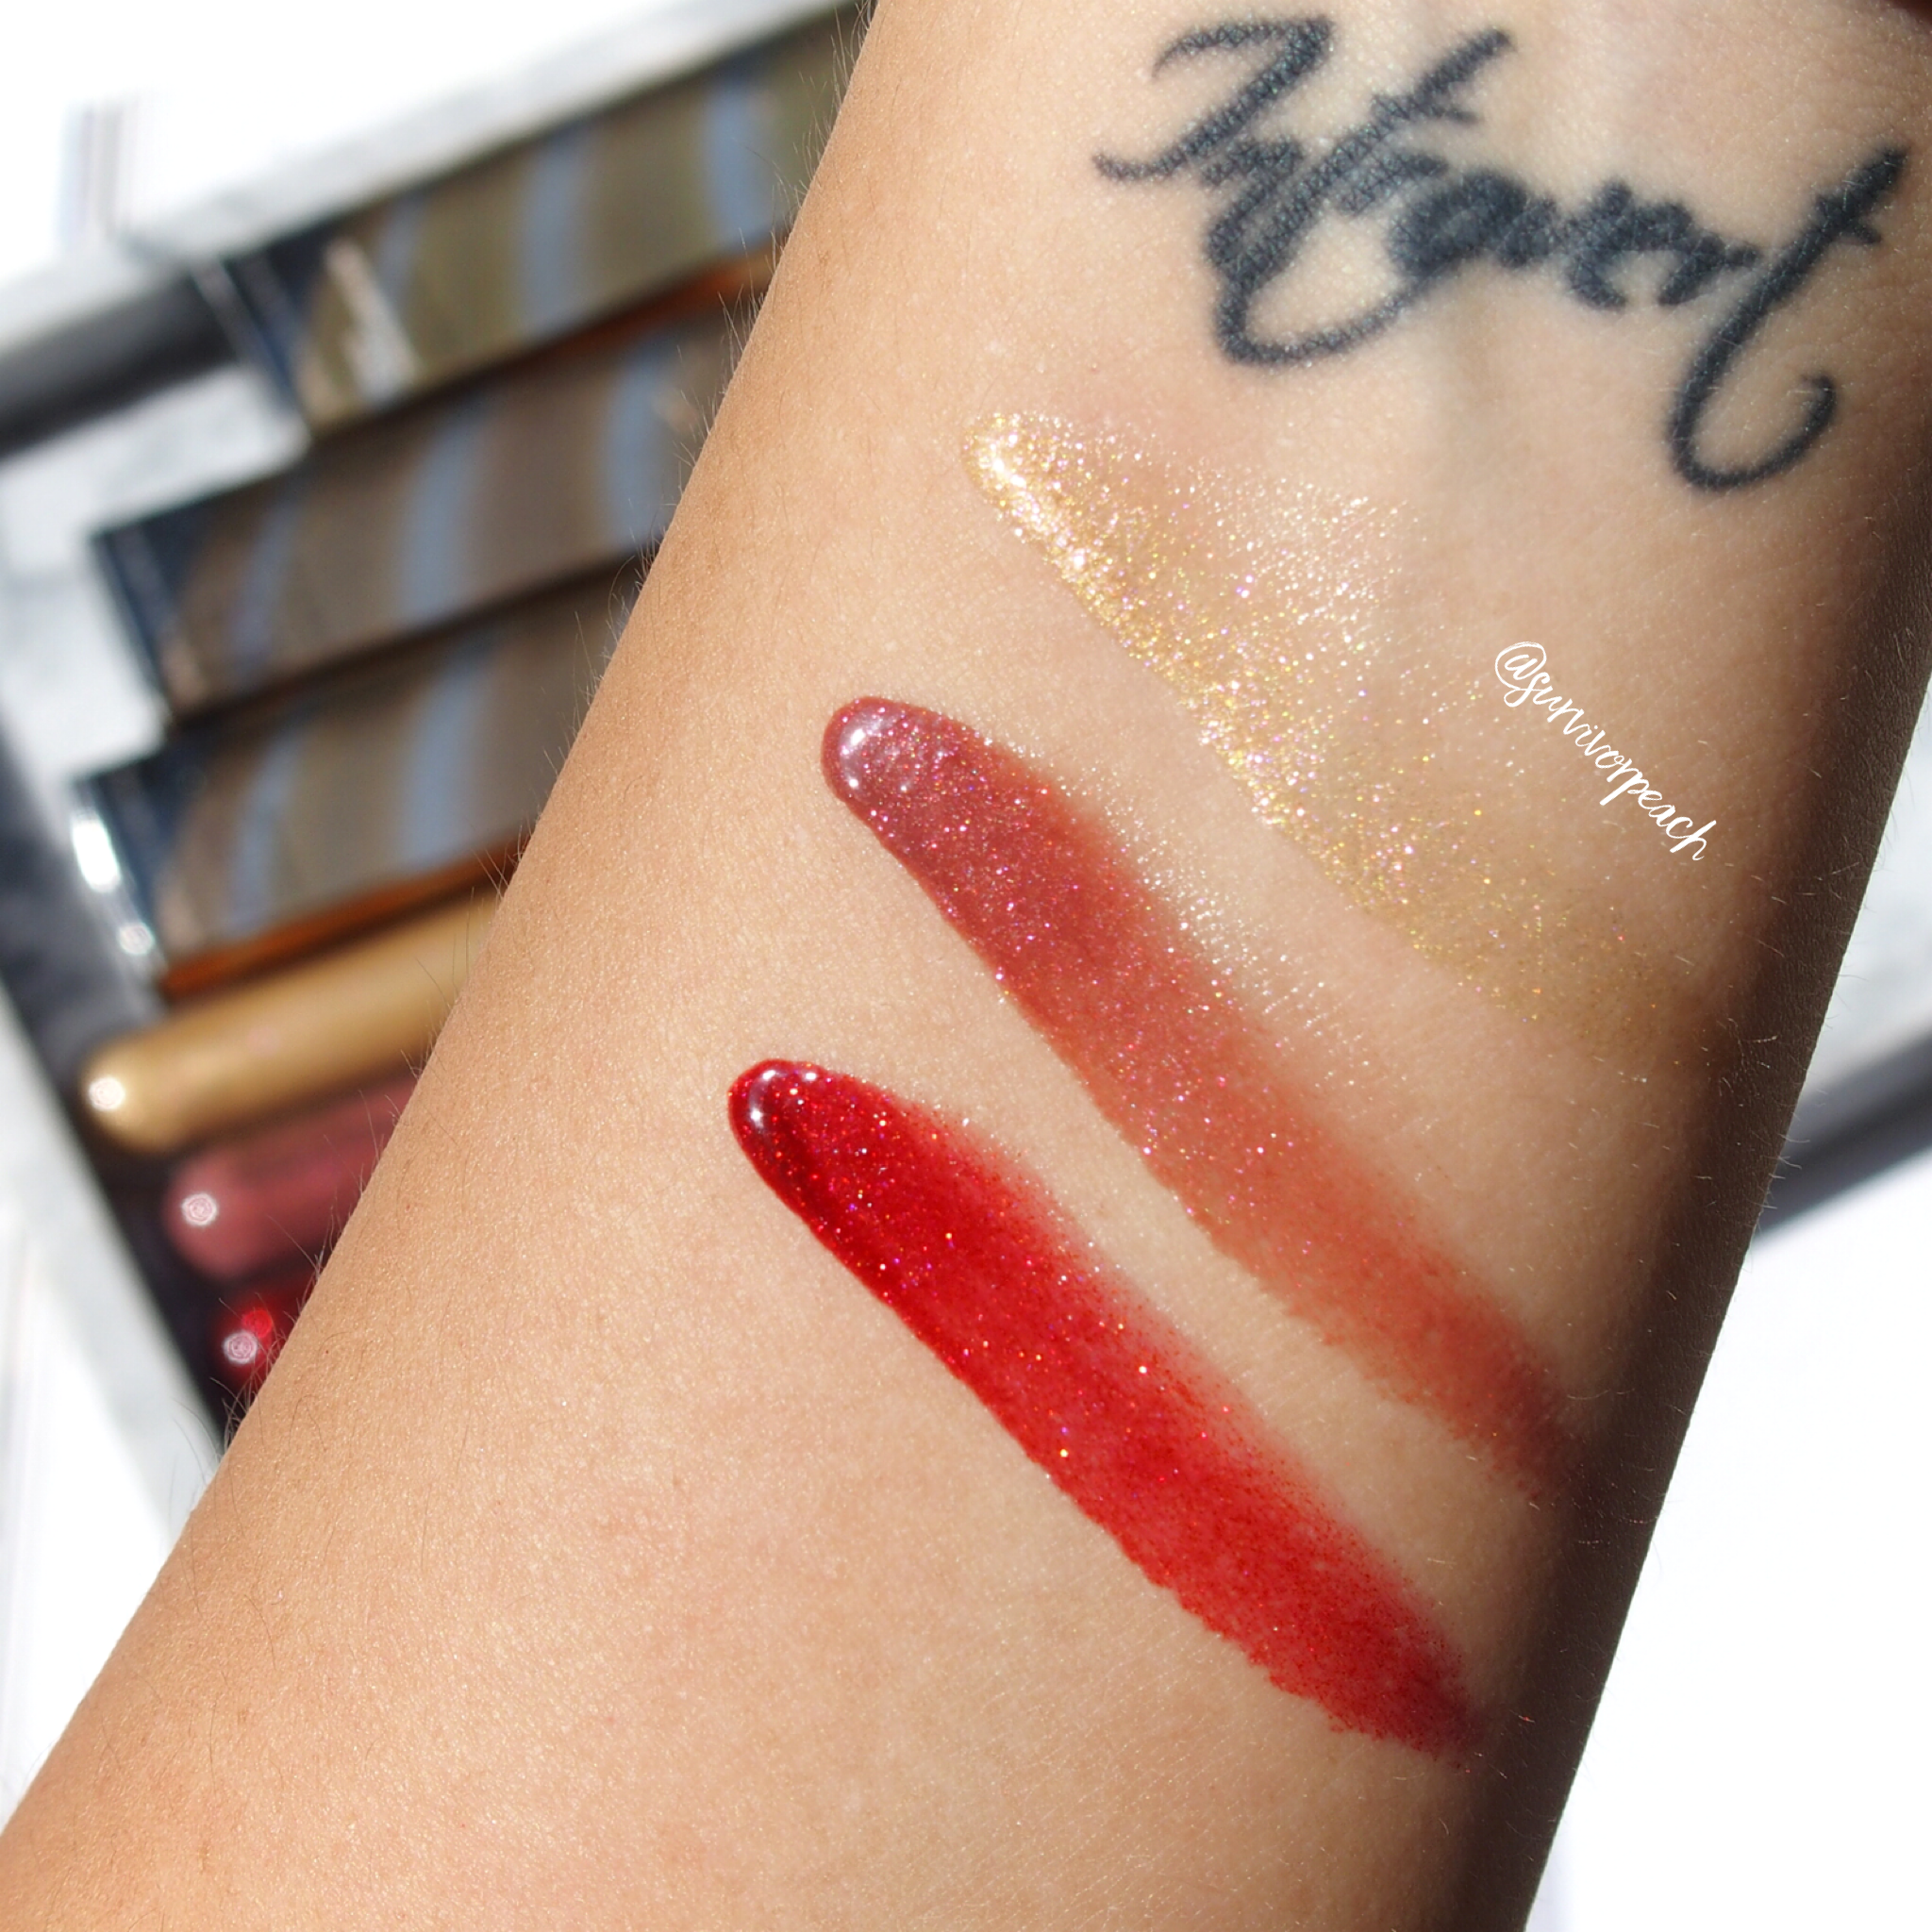 Swatches of the Becca Volcanic Goddess Glow Glosses Metamorphic Gold, Molten Mauve, and Ruby